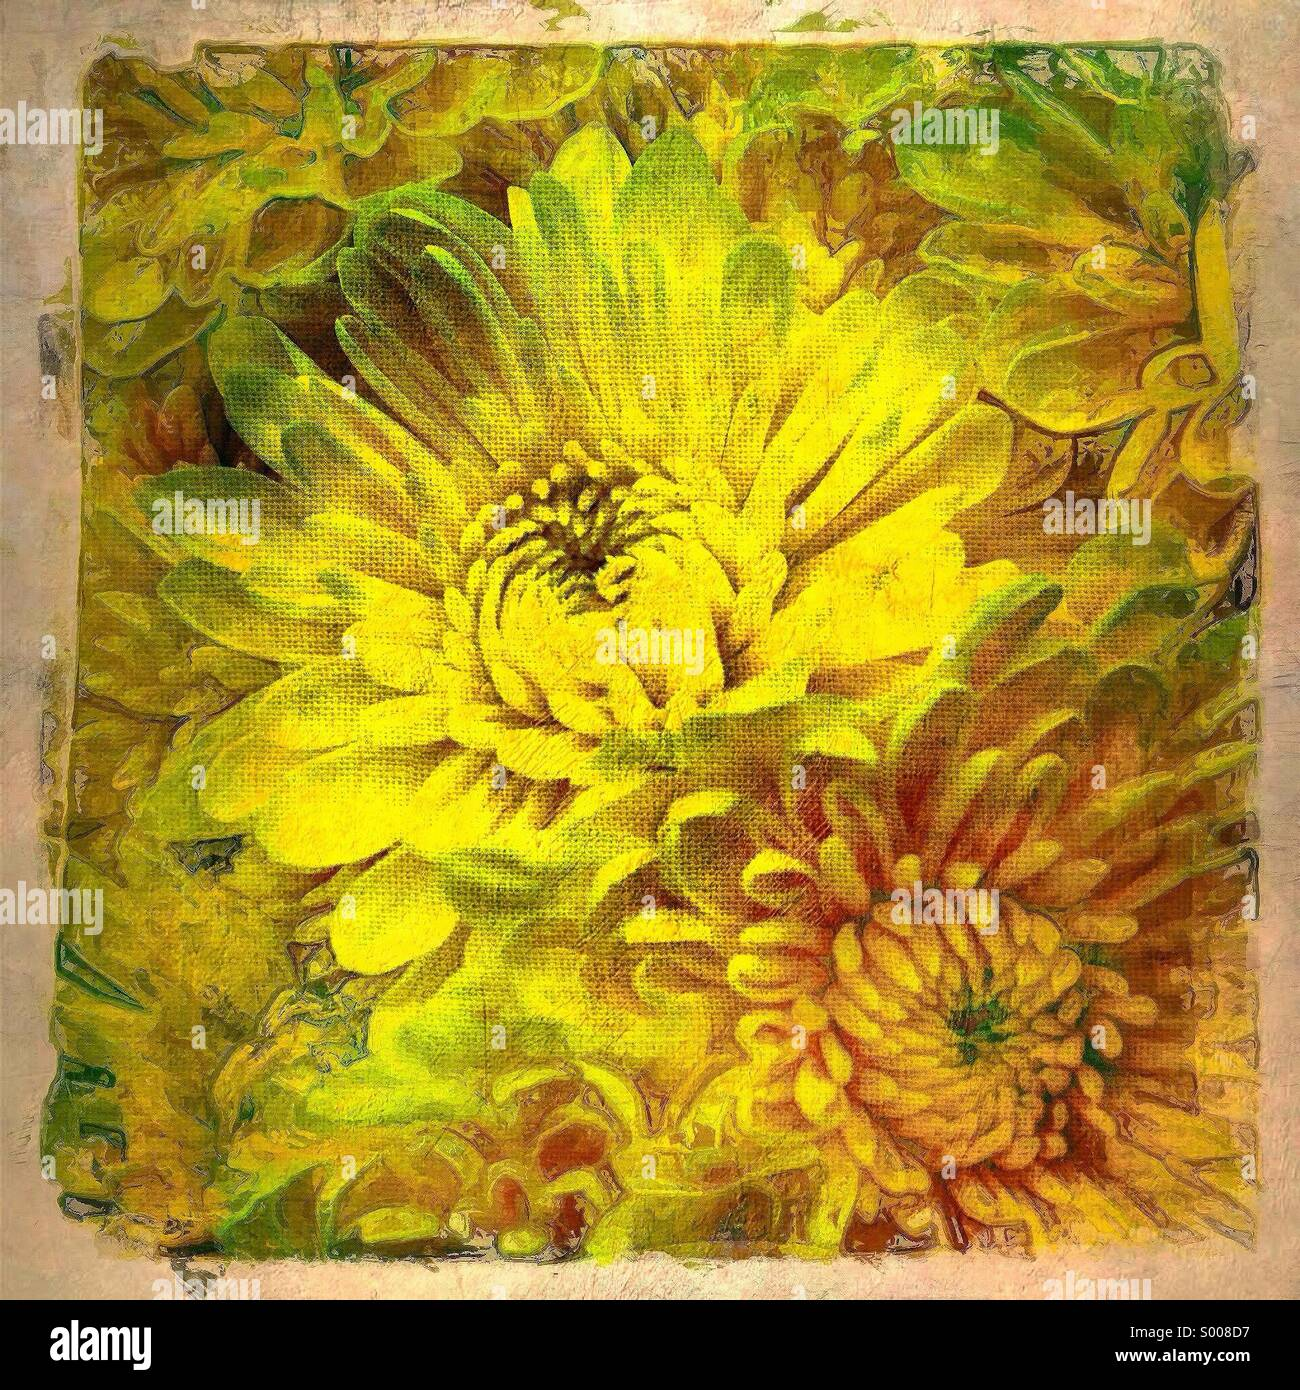 Painterly image of close up of yellow chrysanthemums - Stock Image